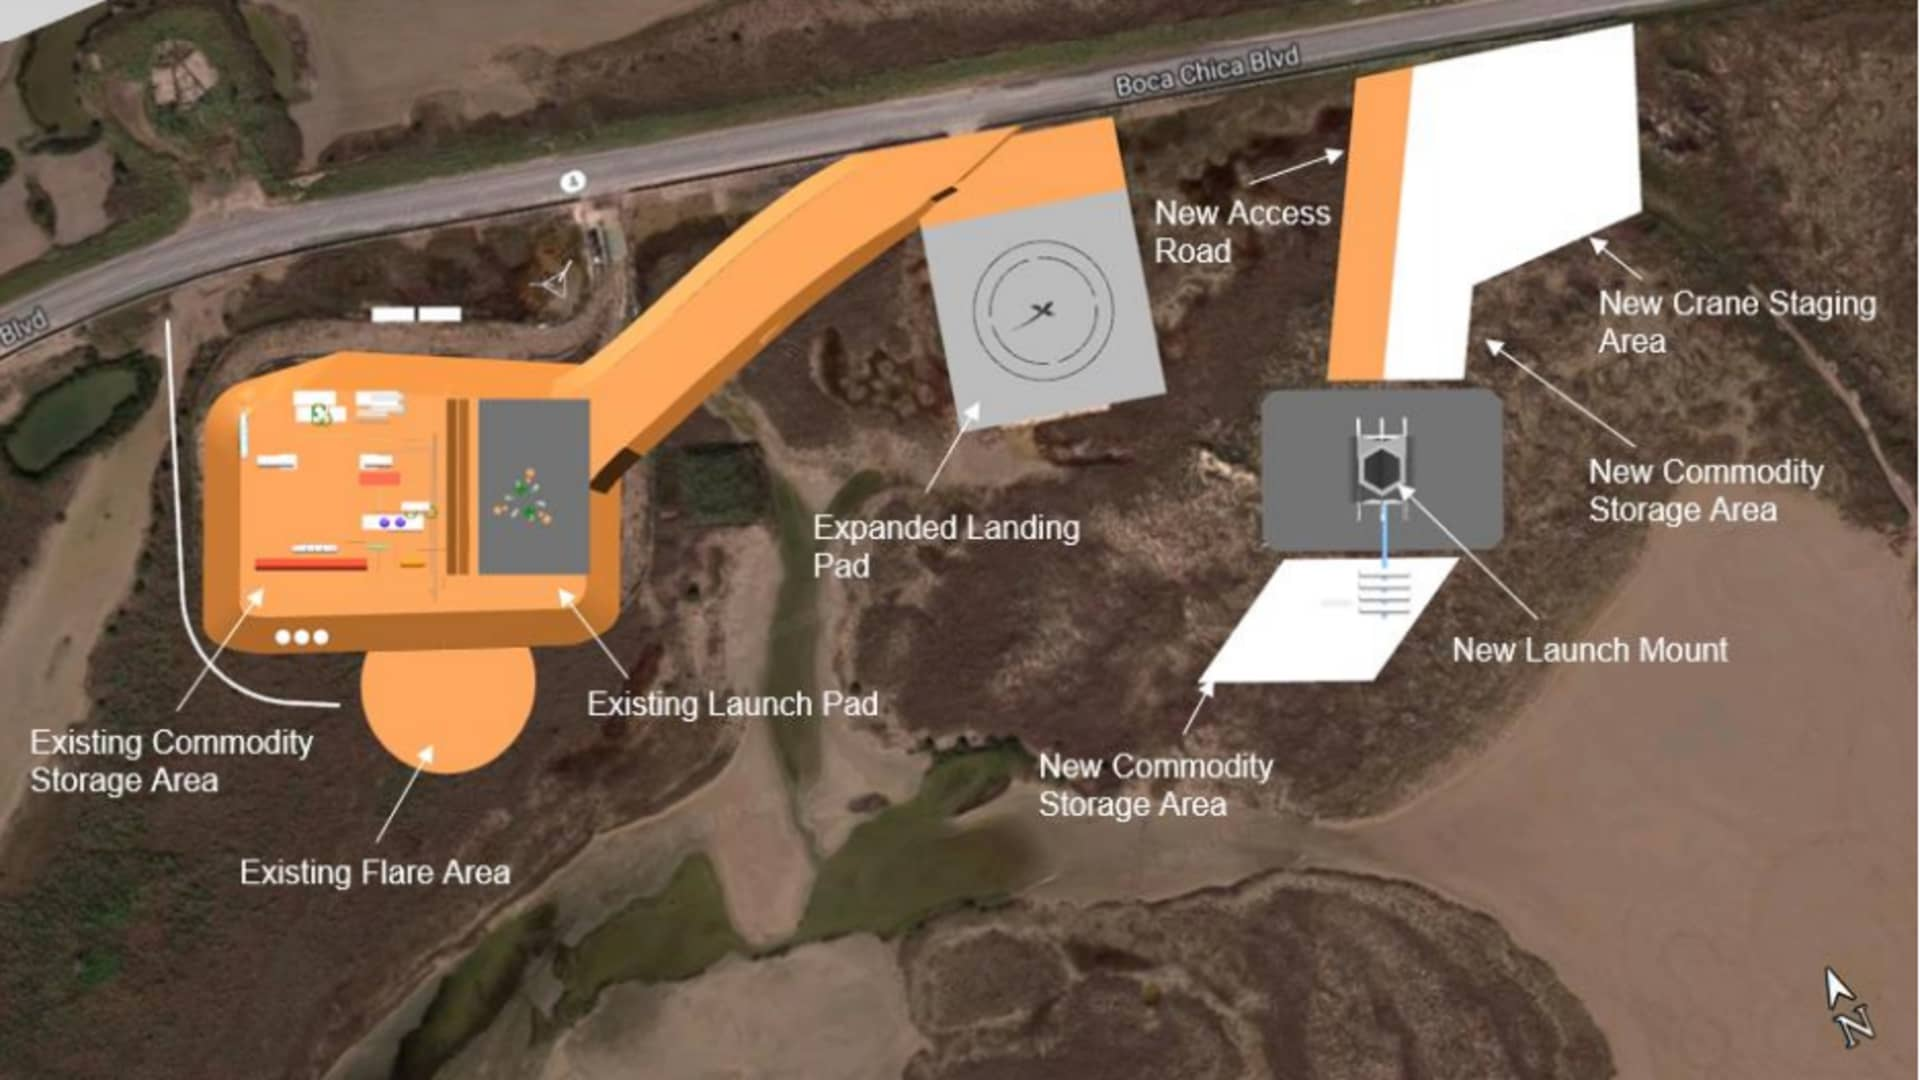 SpaceX's plan as of May 2020 to further build up a launch facility in Boca Chica, Texas.